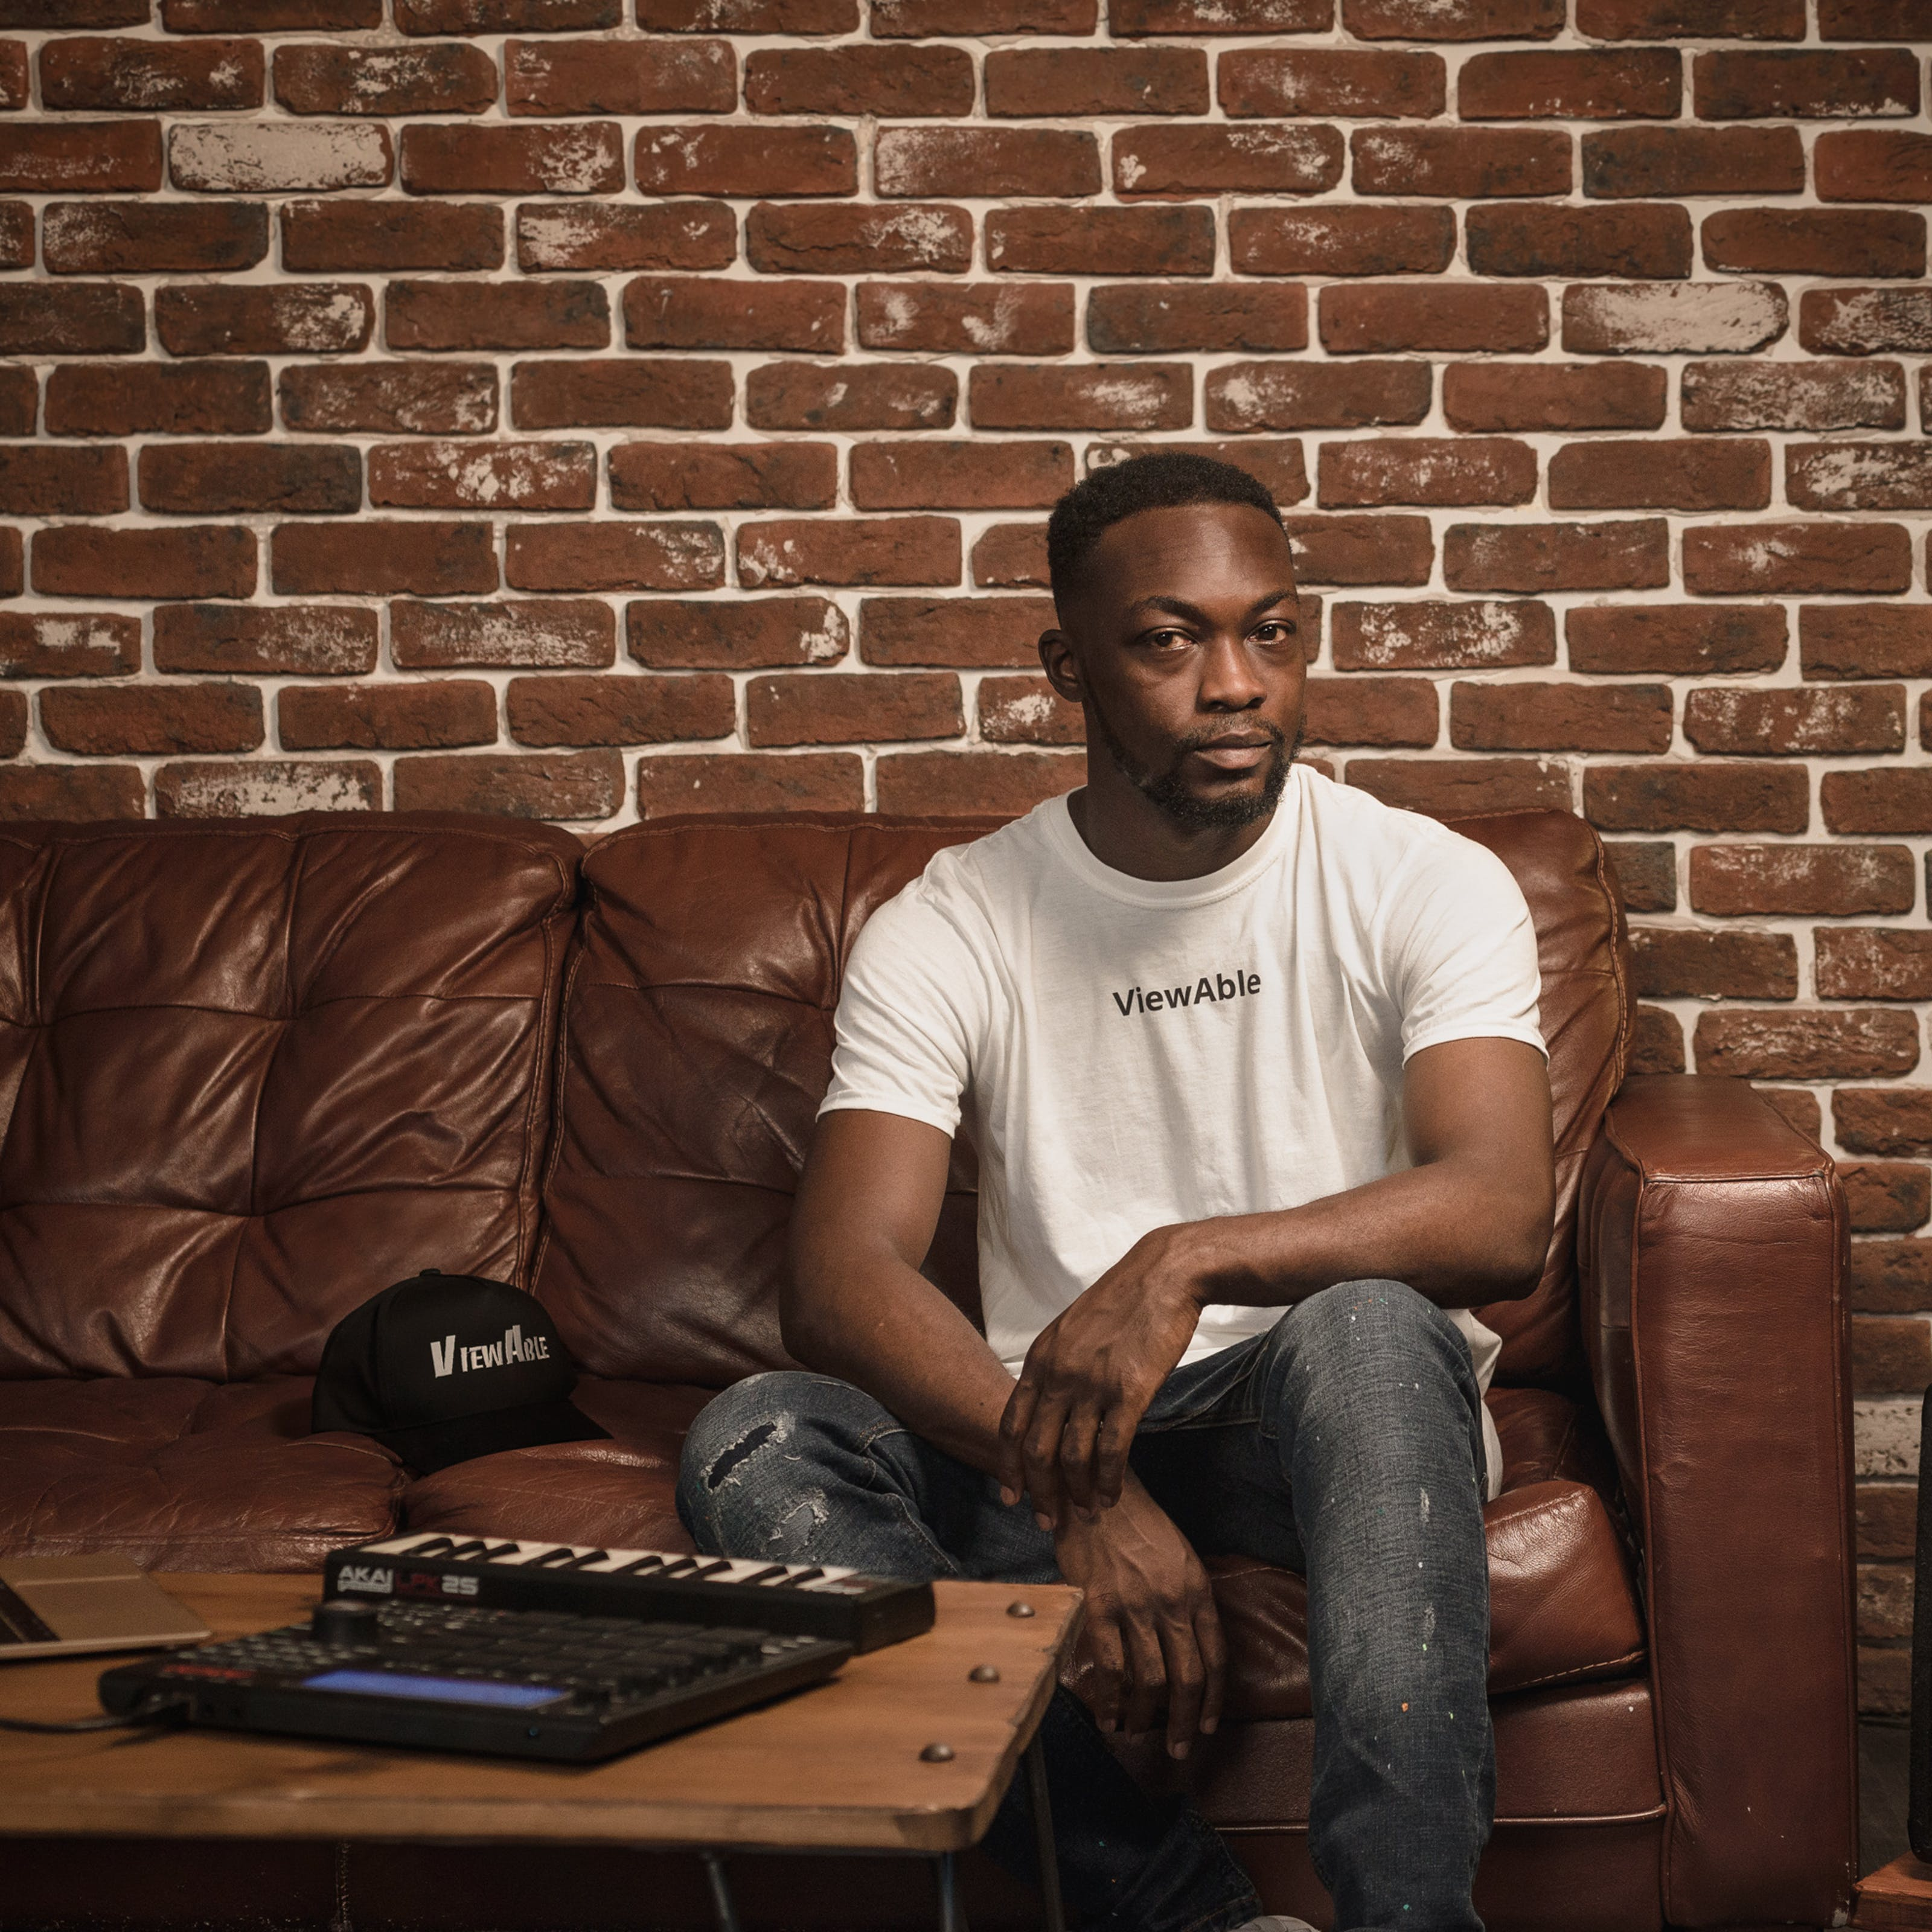 Photographic full length portrait of a man in a white t-shirt sitting on a leather sofa. In front of him to the left of the frame is a wooden table with a laptop, keyboard and beat-box. To the right of the frame is a bass speaker and a floor standing lamp.  Beside him on the sofa is a hat. A single line of text is legible on both the T-shirt and hat, reading 'Viewable'.